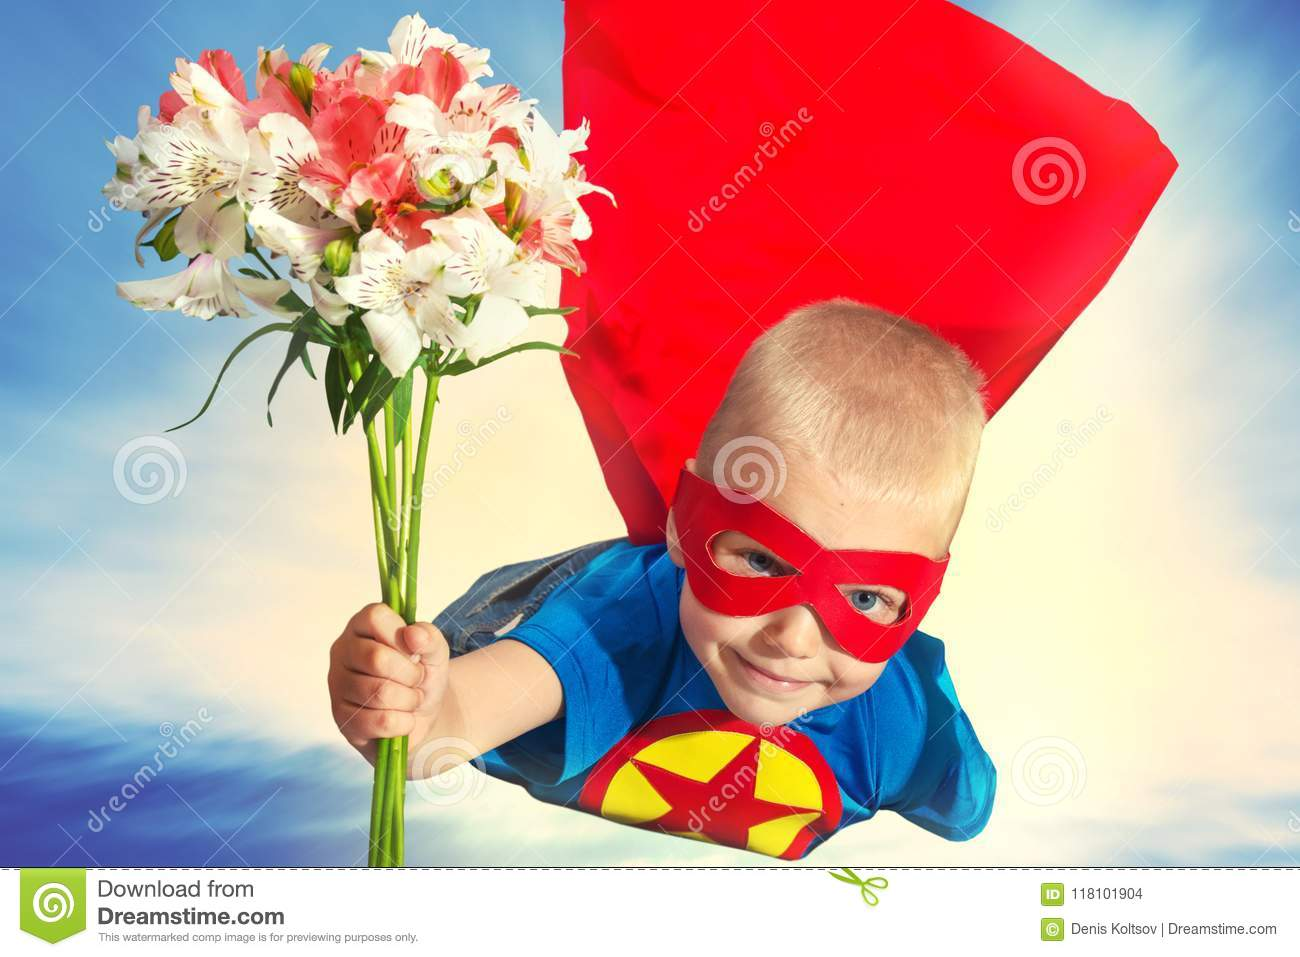 A Child In A Superhero Costume With A Bouquet Of Flowers Flies To